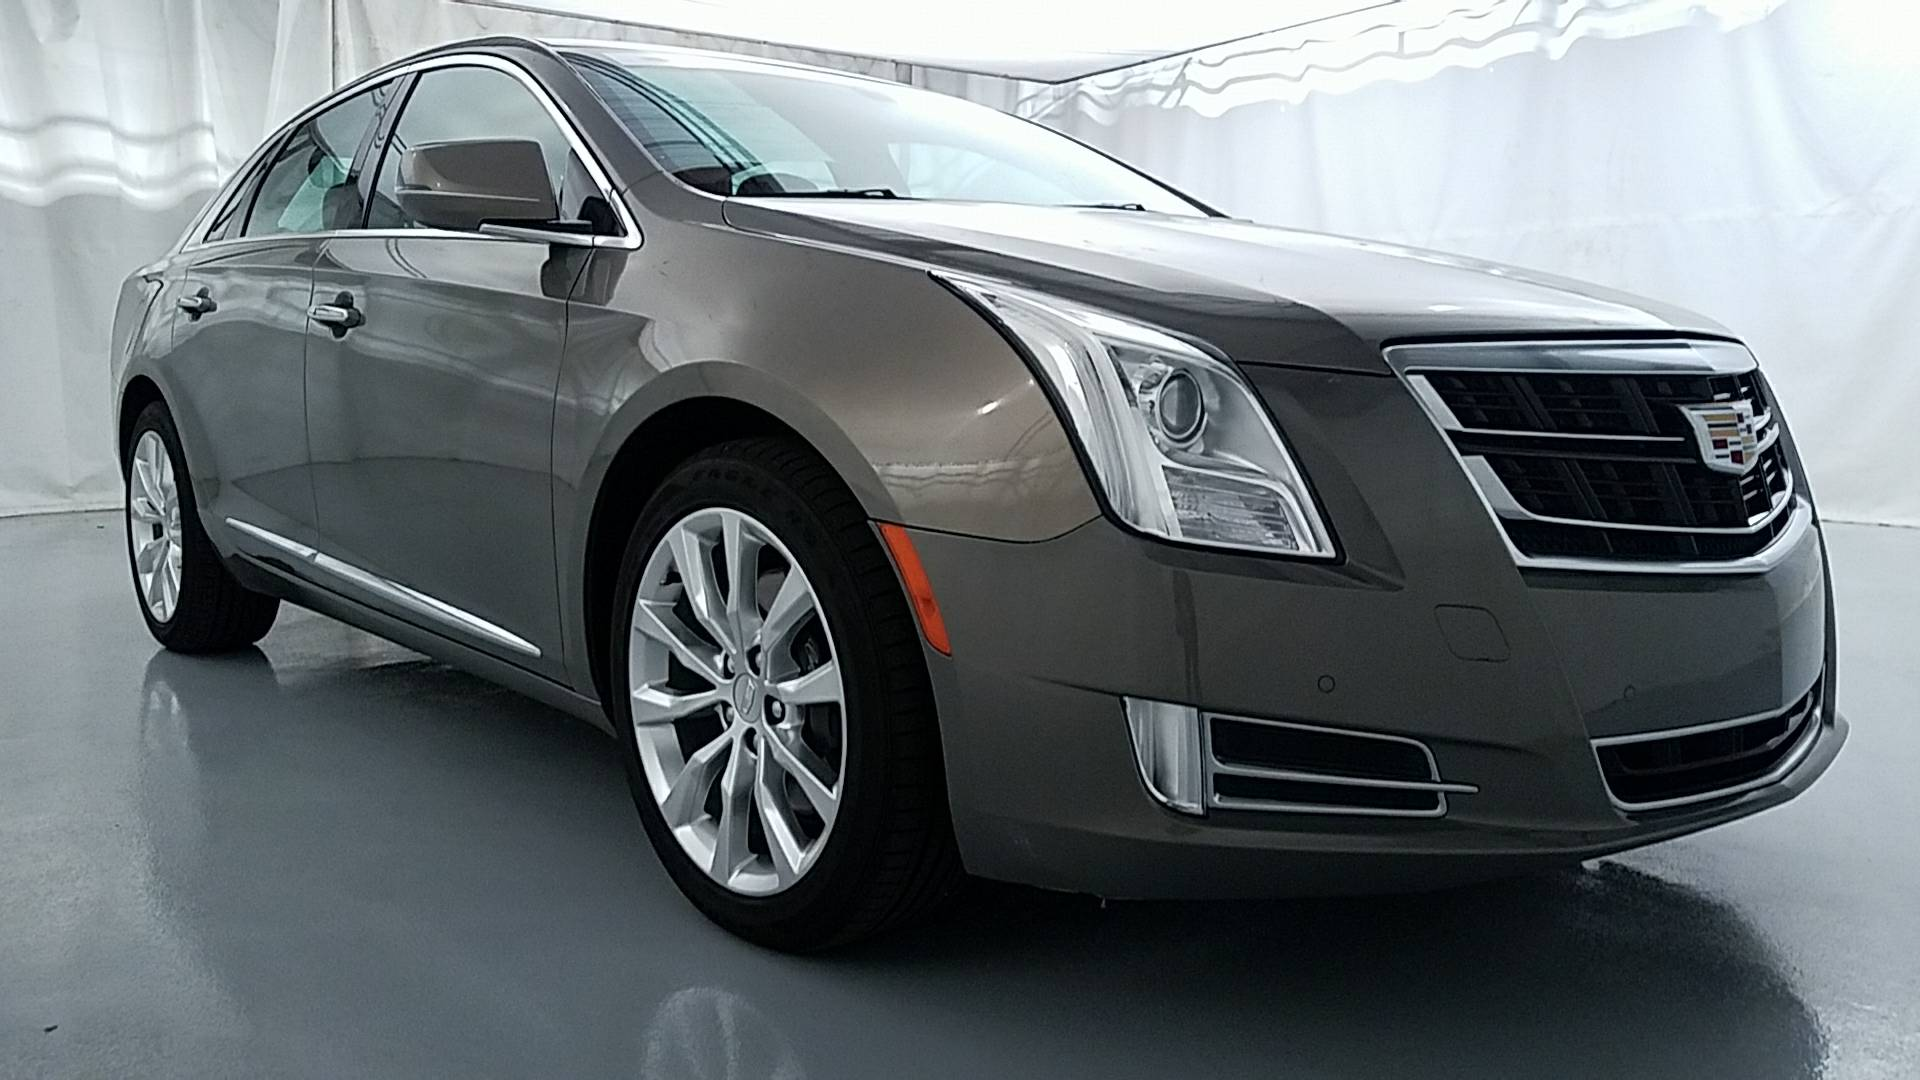 xts kennett mo in vehiclesearchresults for sale vehicle cadillac vehicles all photo